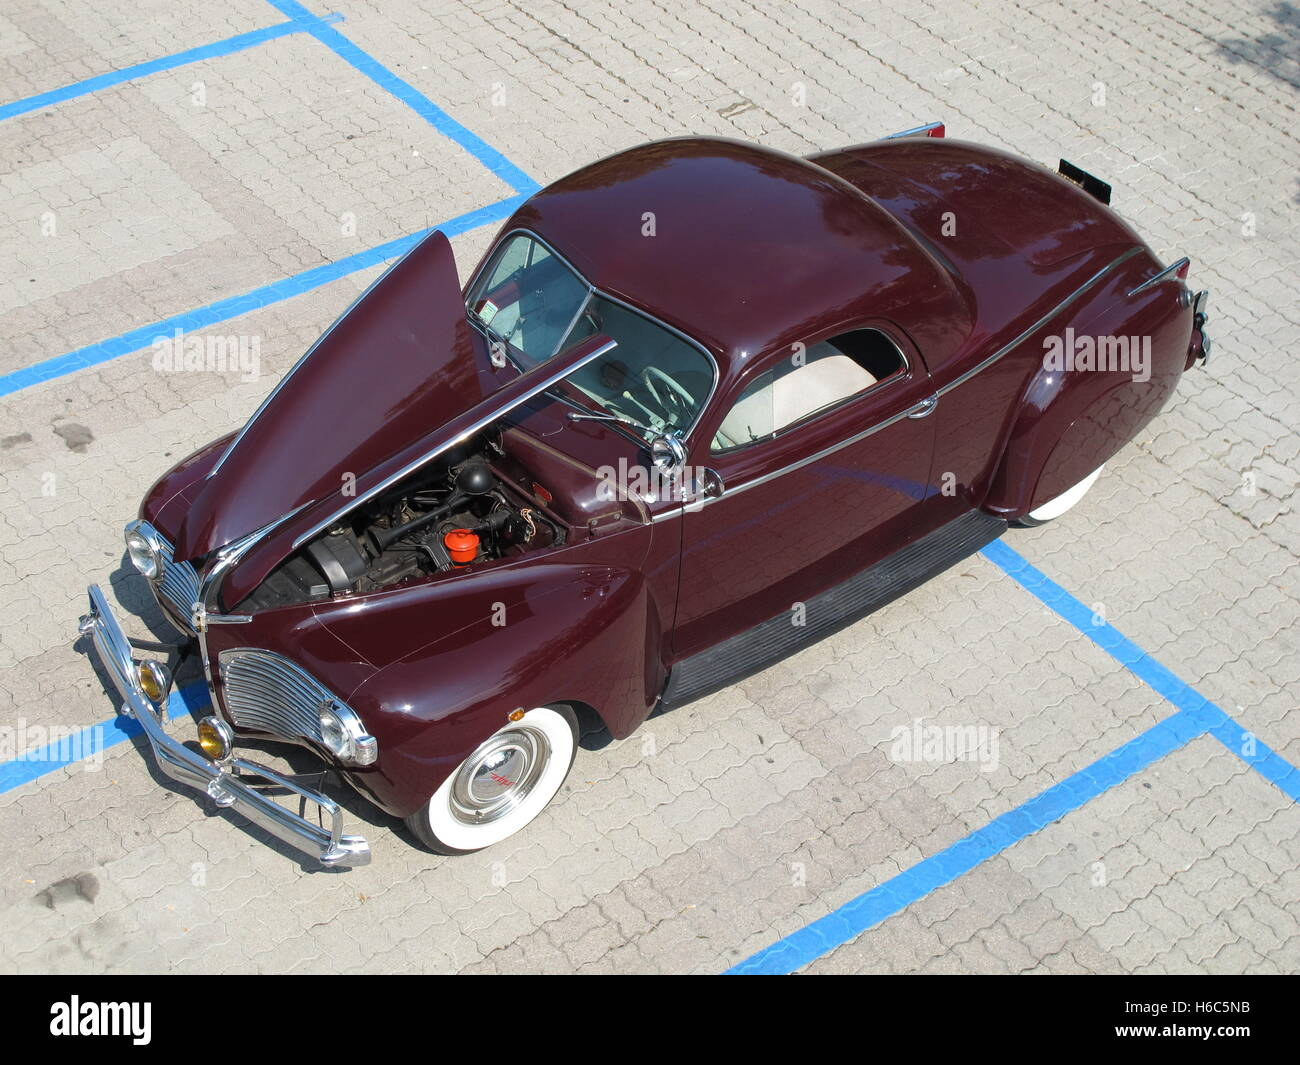 dodge challenger side profile stock photos \u0026 dodge challenger side1941 dodge business coupe vintage car stock image